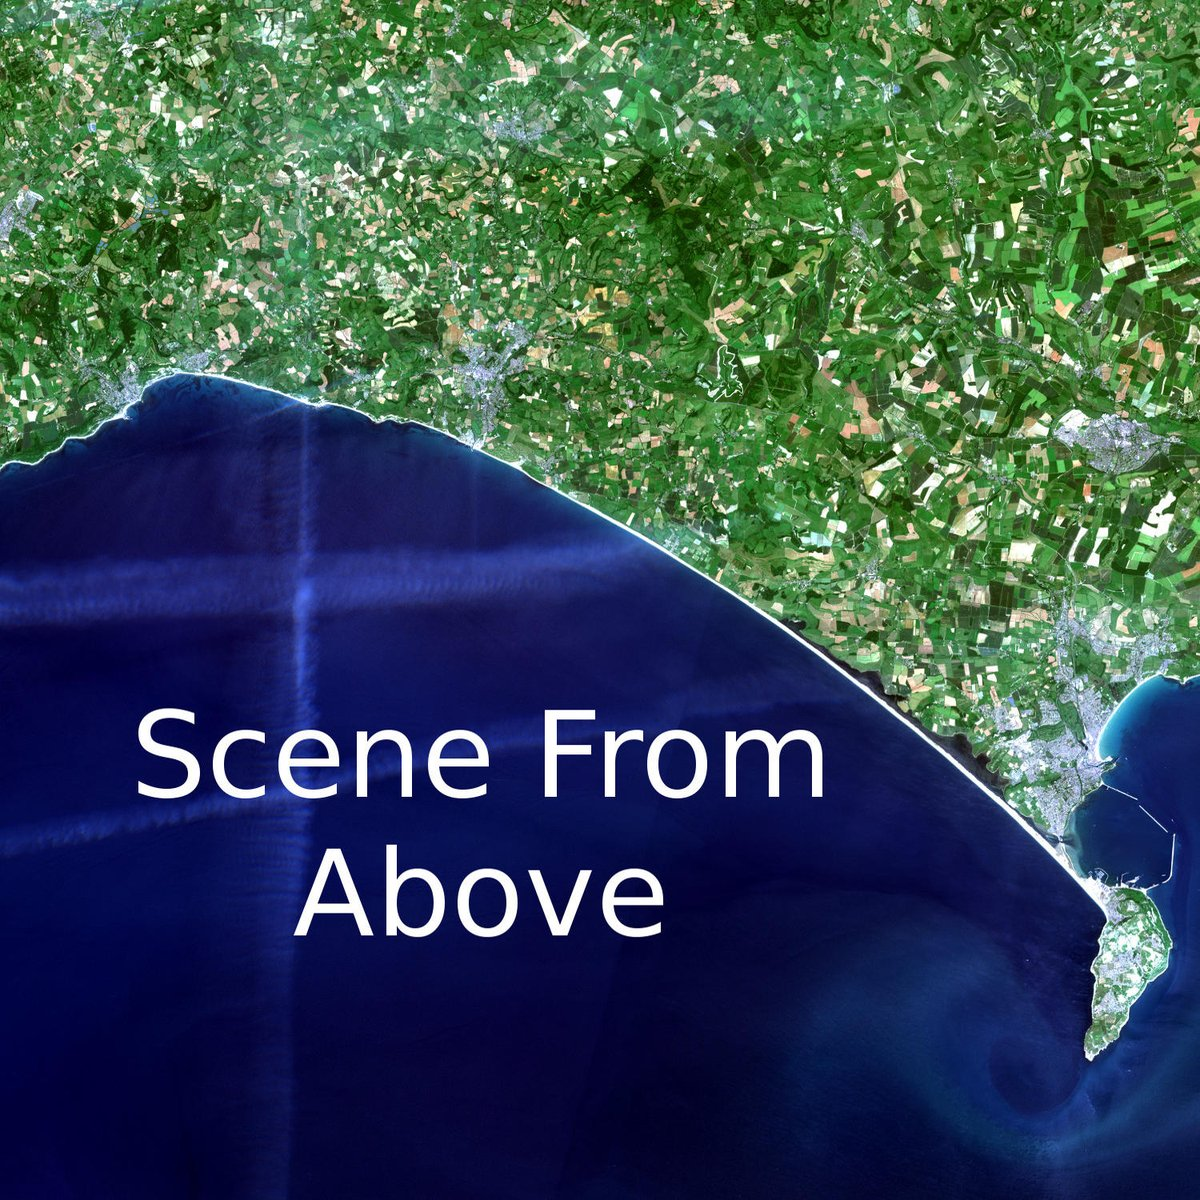 In the news this #scenefromabove episode...  #Sentinel6 @Maxar  #rastersrev @Stanford  @opencholmes  #awesomeEOcode @xarray_dev  #webgl   And we talk to @Keiko_geo about #earthengine